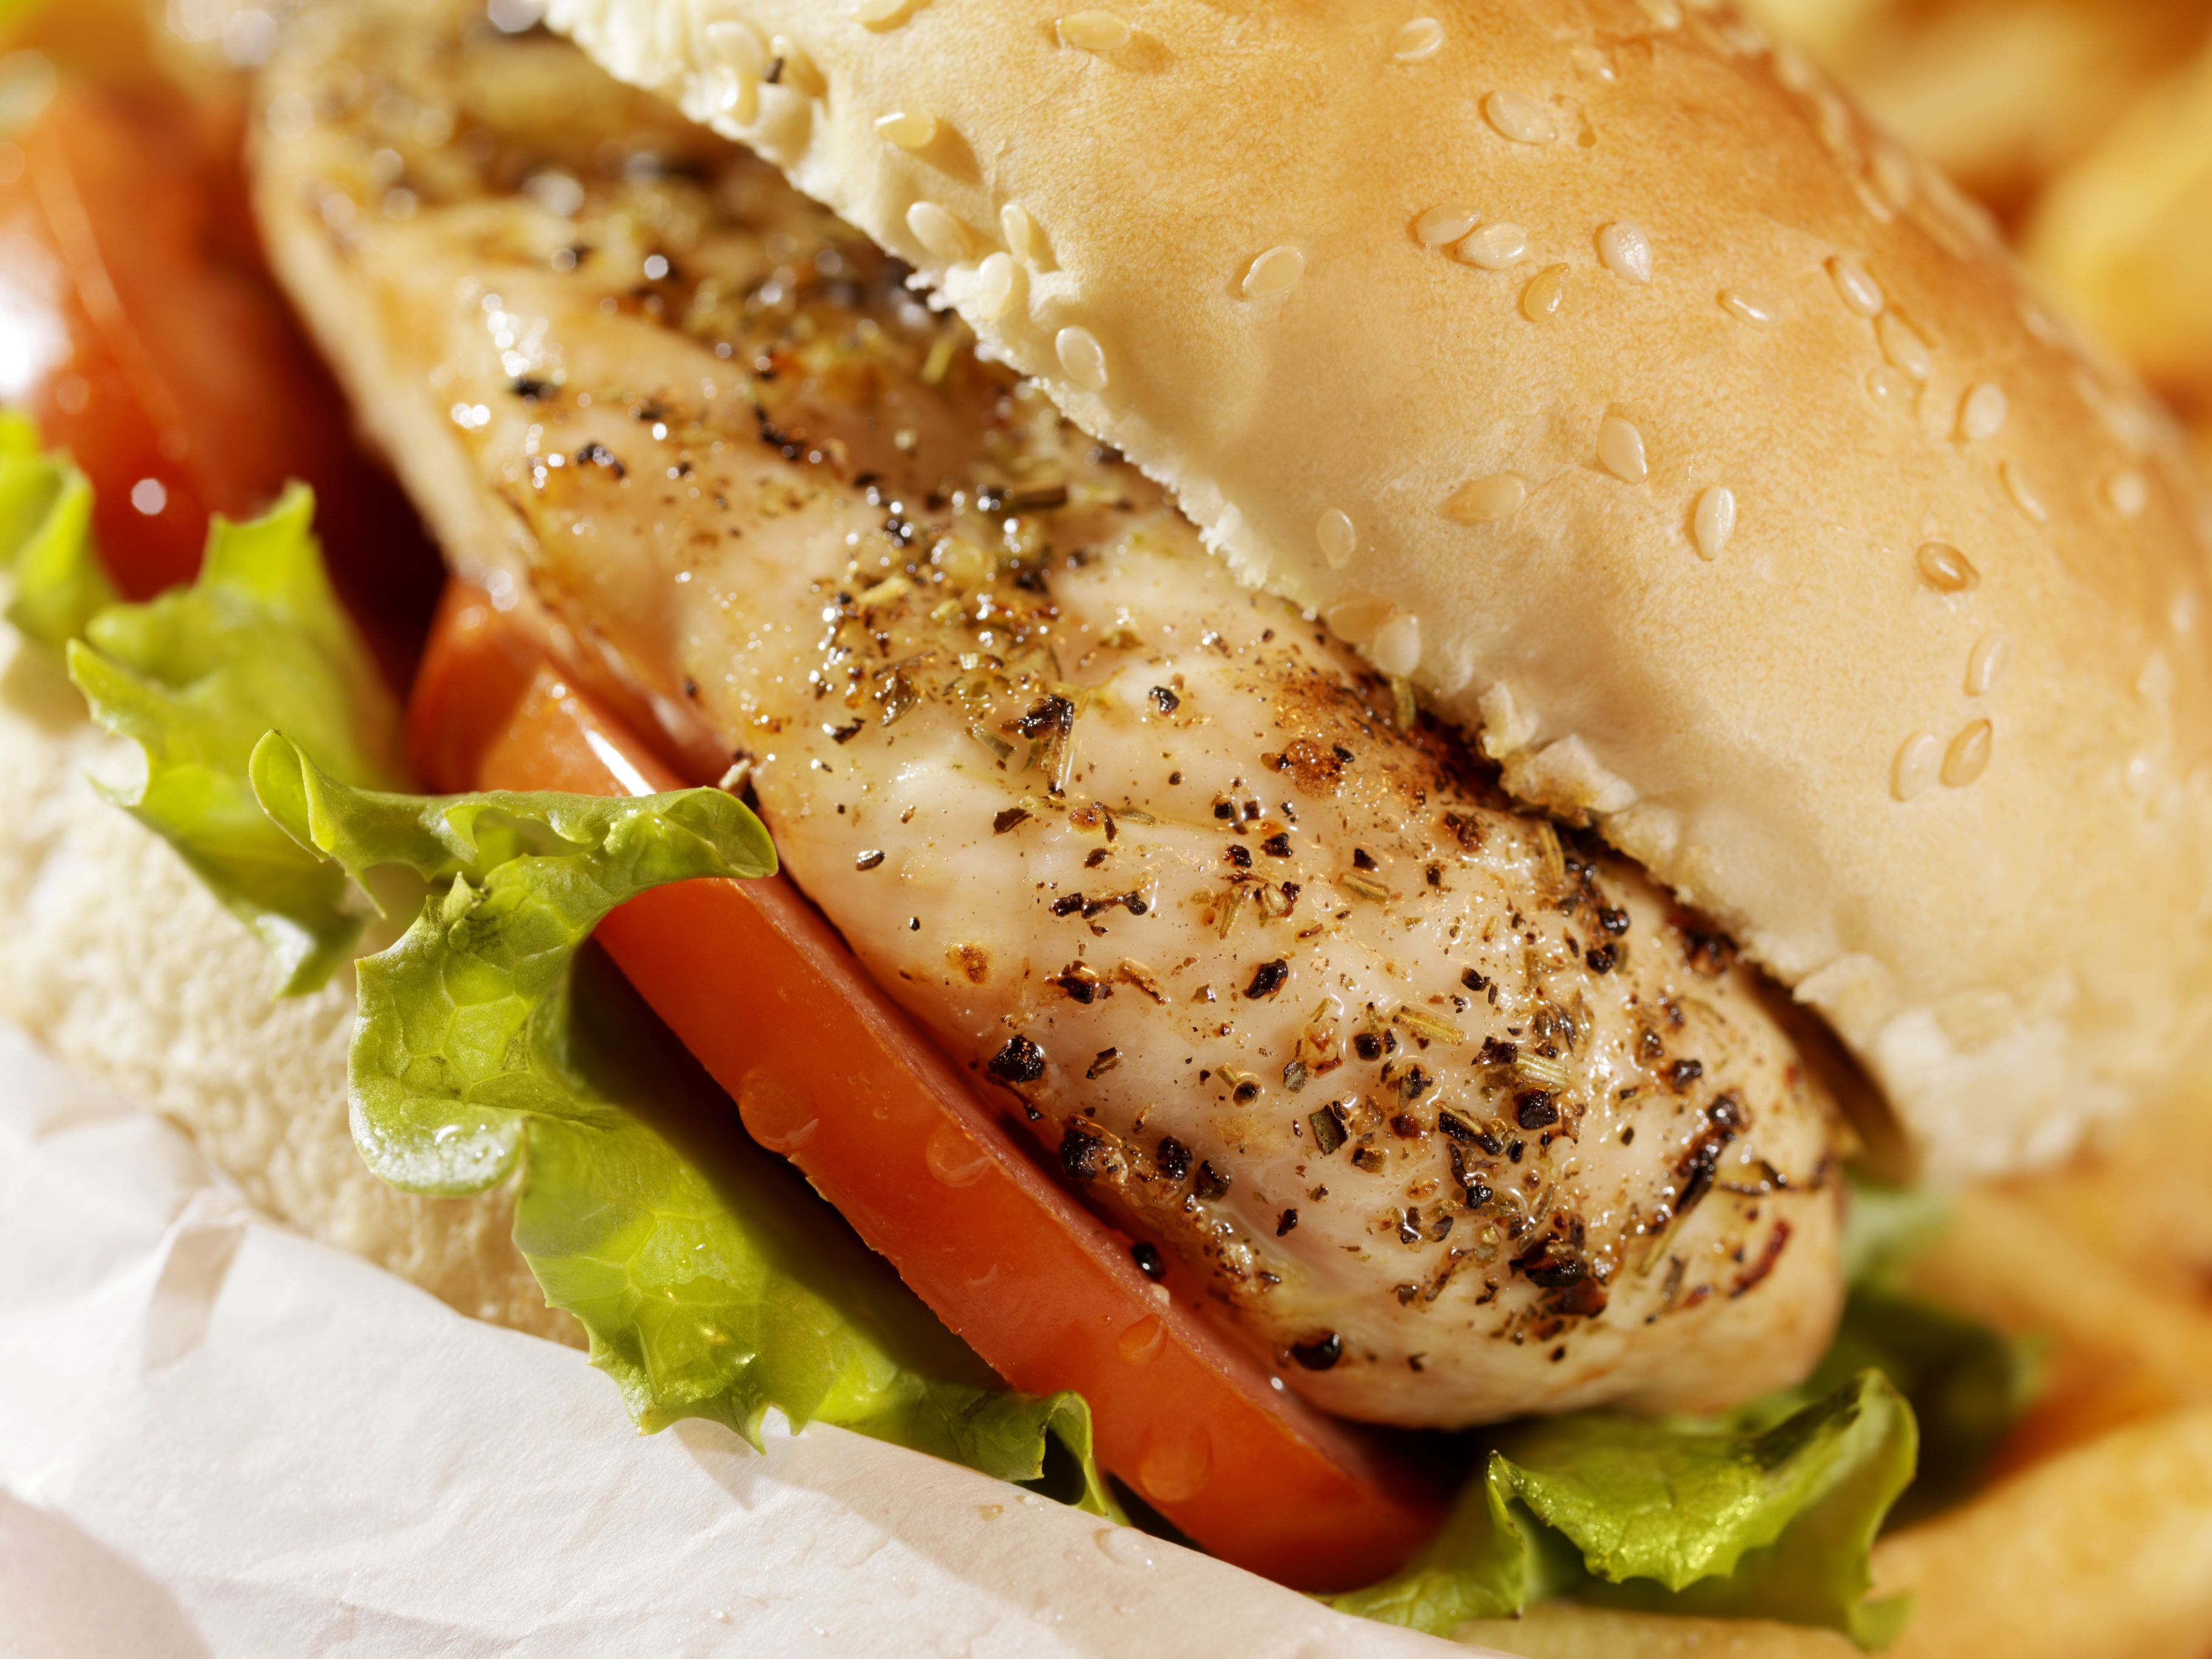 Chick fil a nutrition facts menu choices and calories for Chick fil a fish sandwich 2017